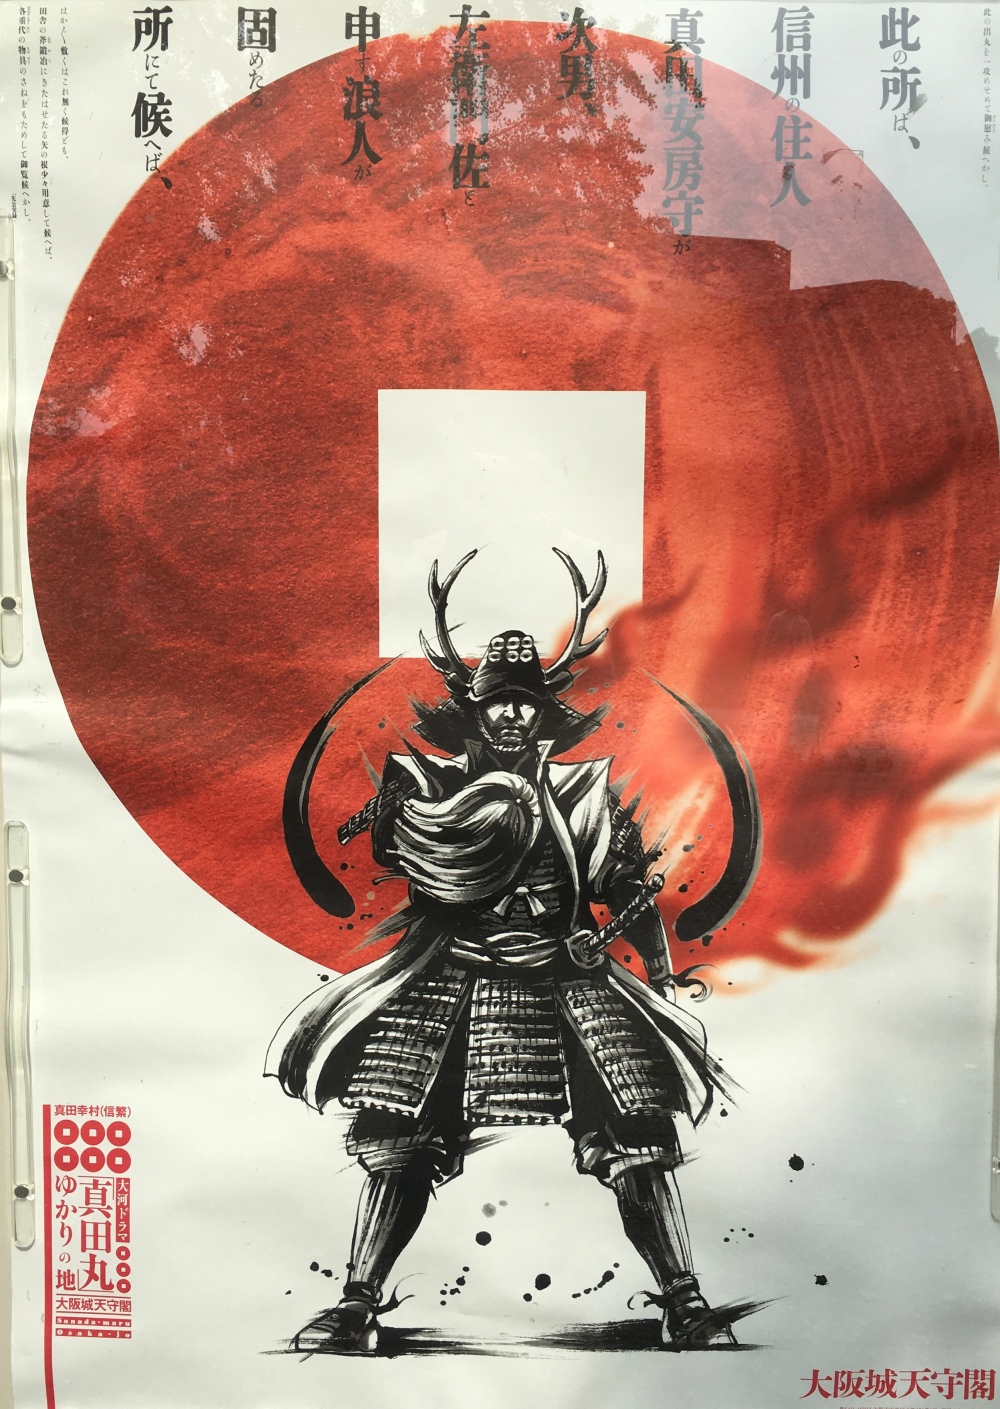 Samurai in Japan